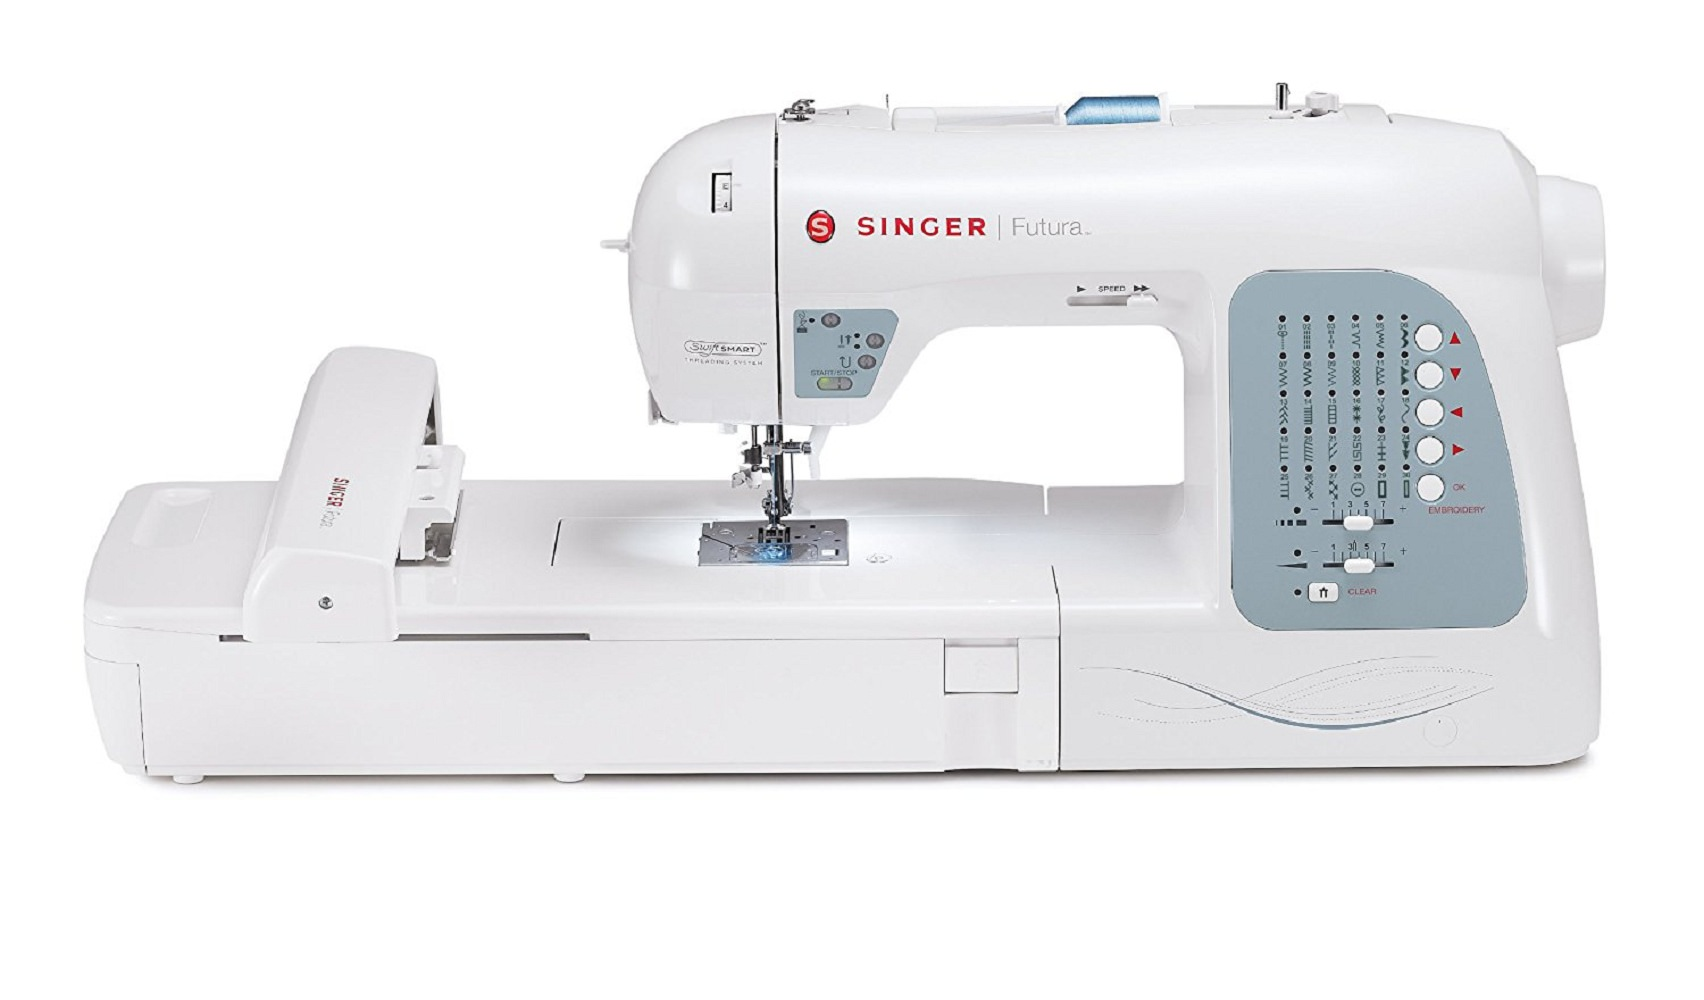 Singer Xl 400 Futura Sewing Embroidery Walmart Com